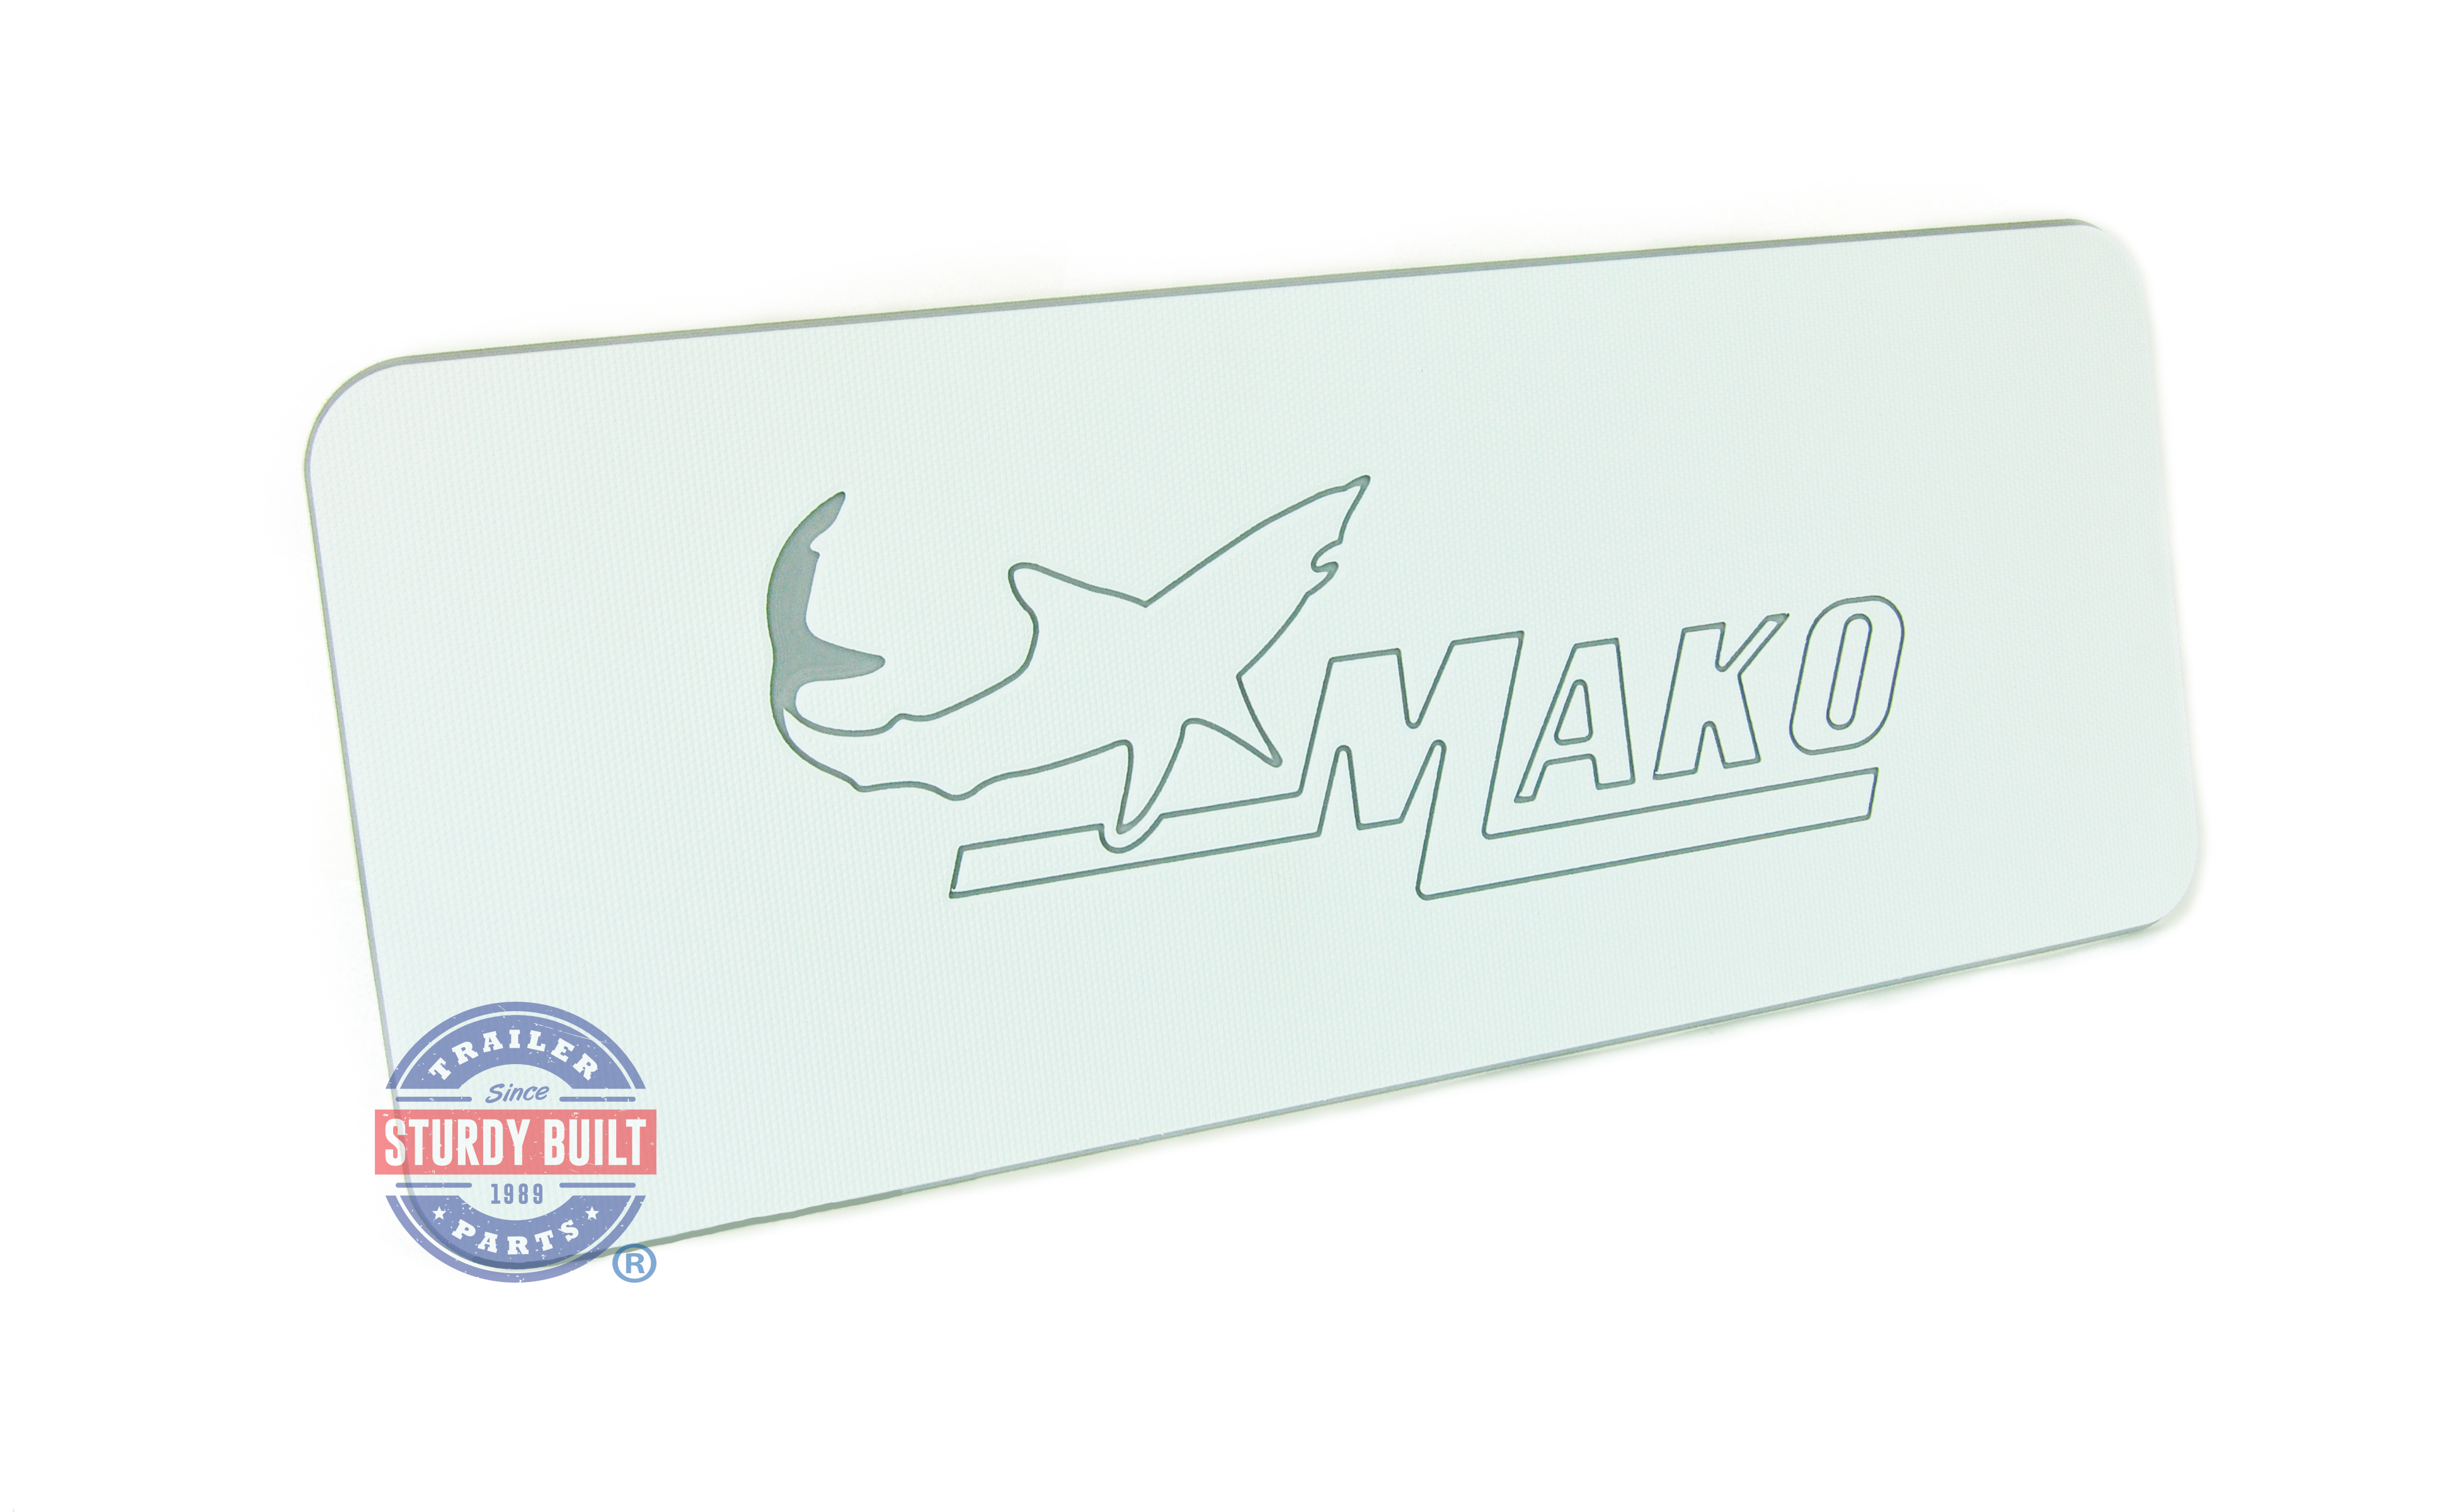 SeaDek Helm Pad Large Non Skid White and Storm Gray Boat Mat With Mako Logo